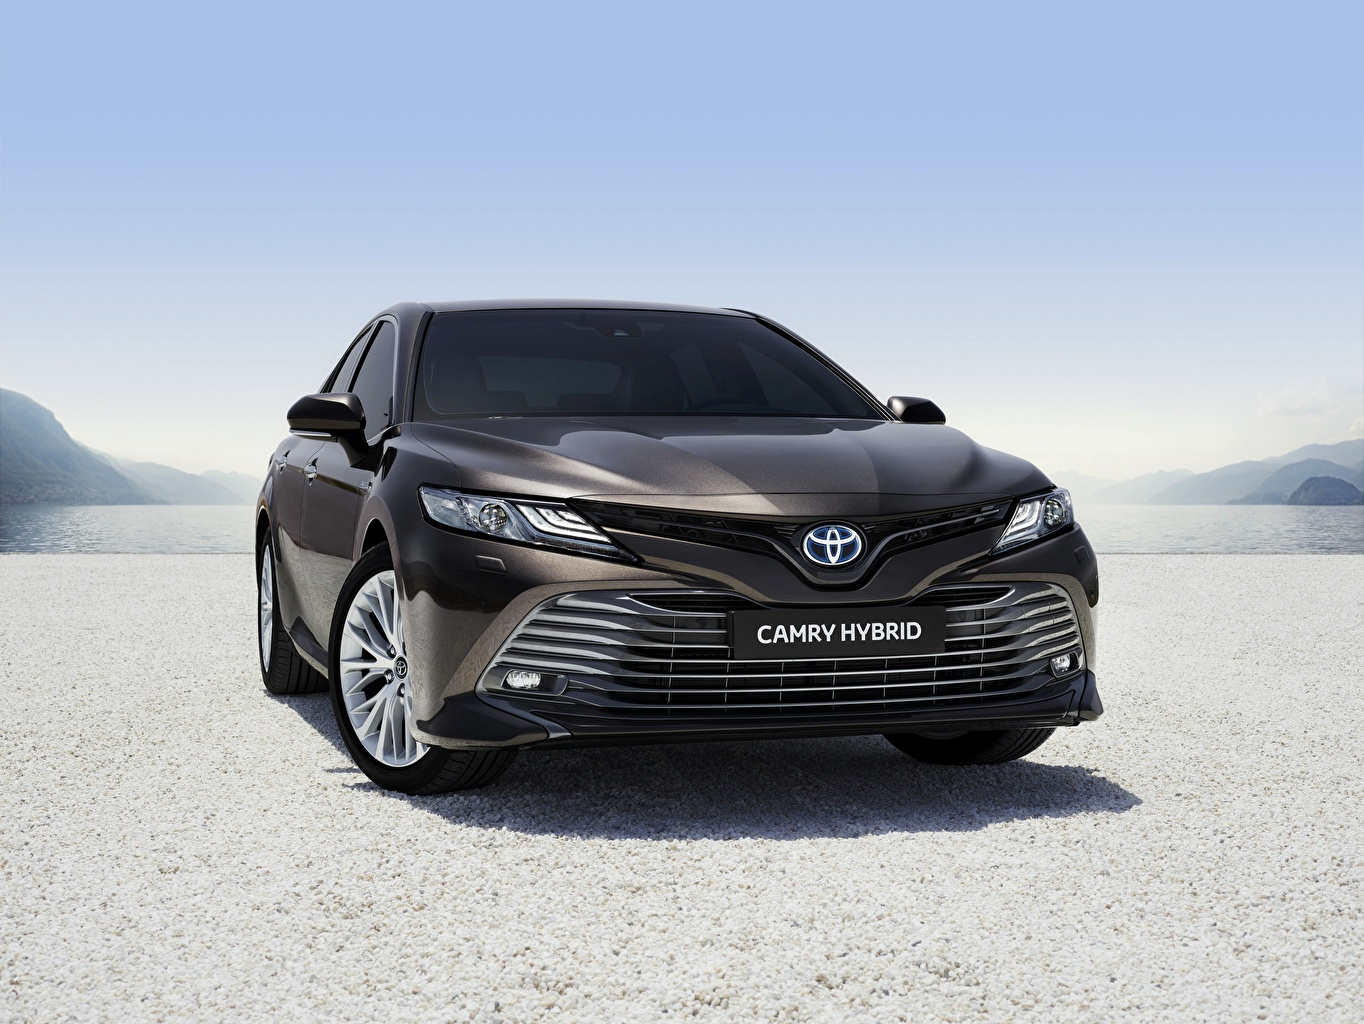 Images Toyota Camry Hybrid 2019 Hybrid vehicle Black Front automobile auto Cars